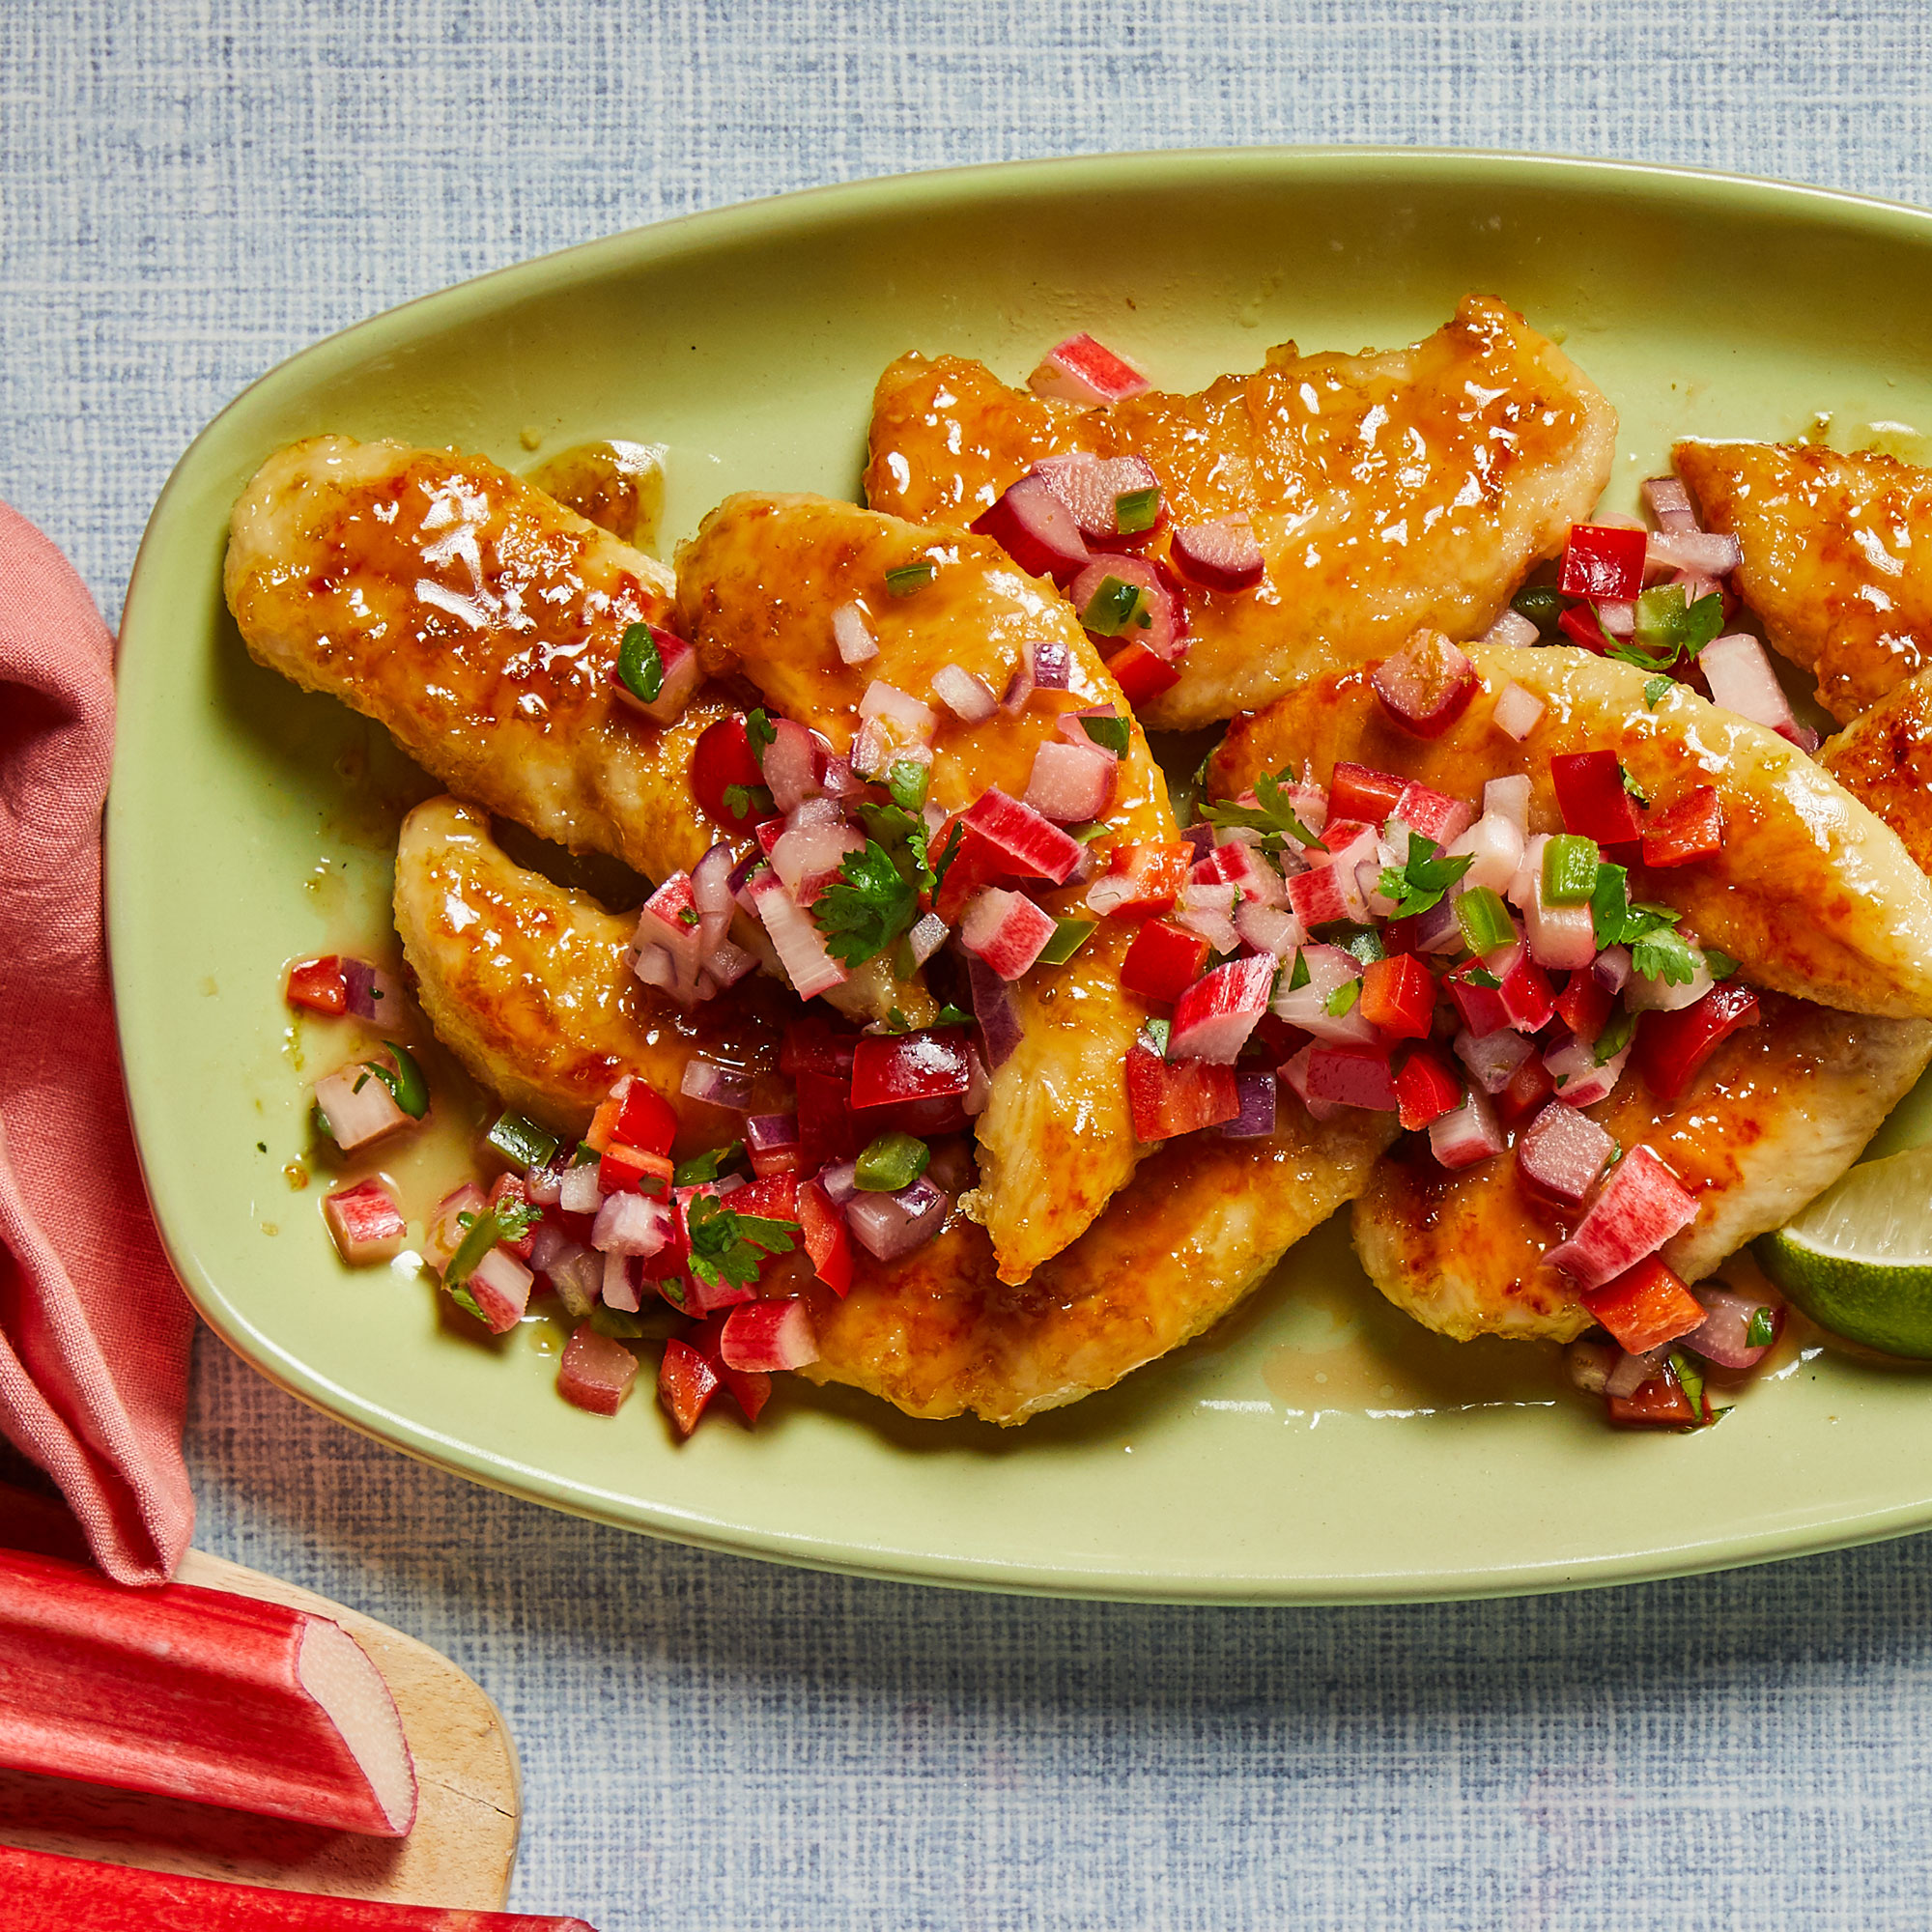 Honey-Lime Chicken Tenders with Rhubarb Salsa